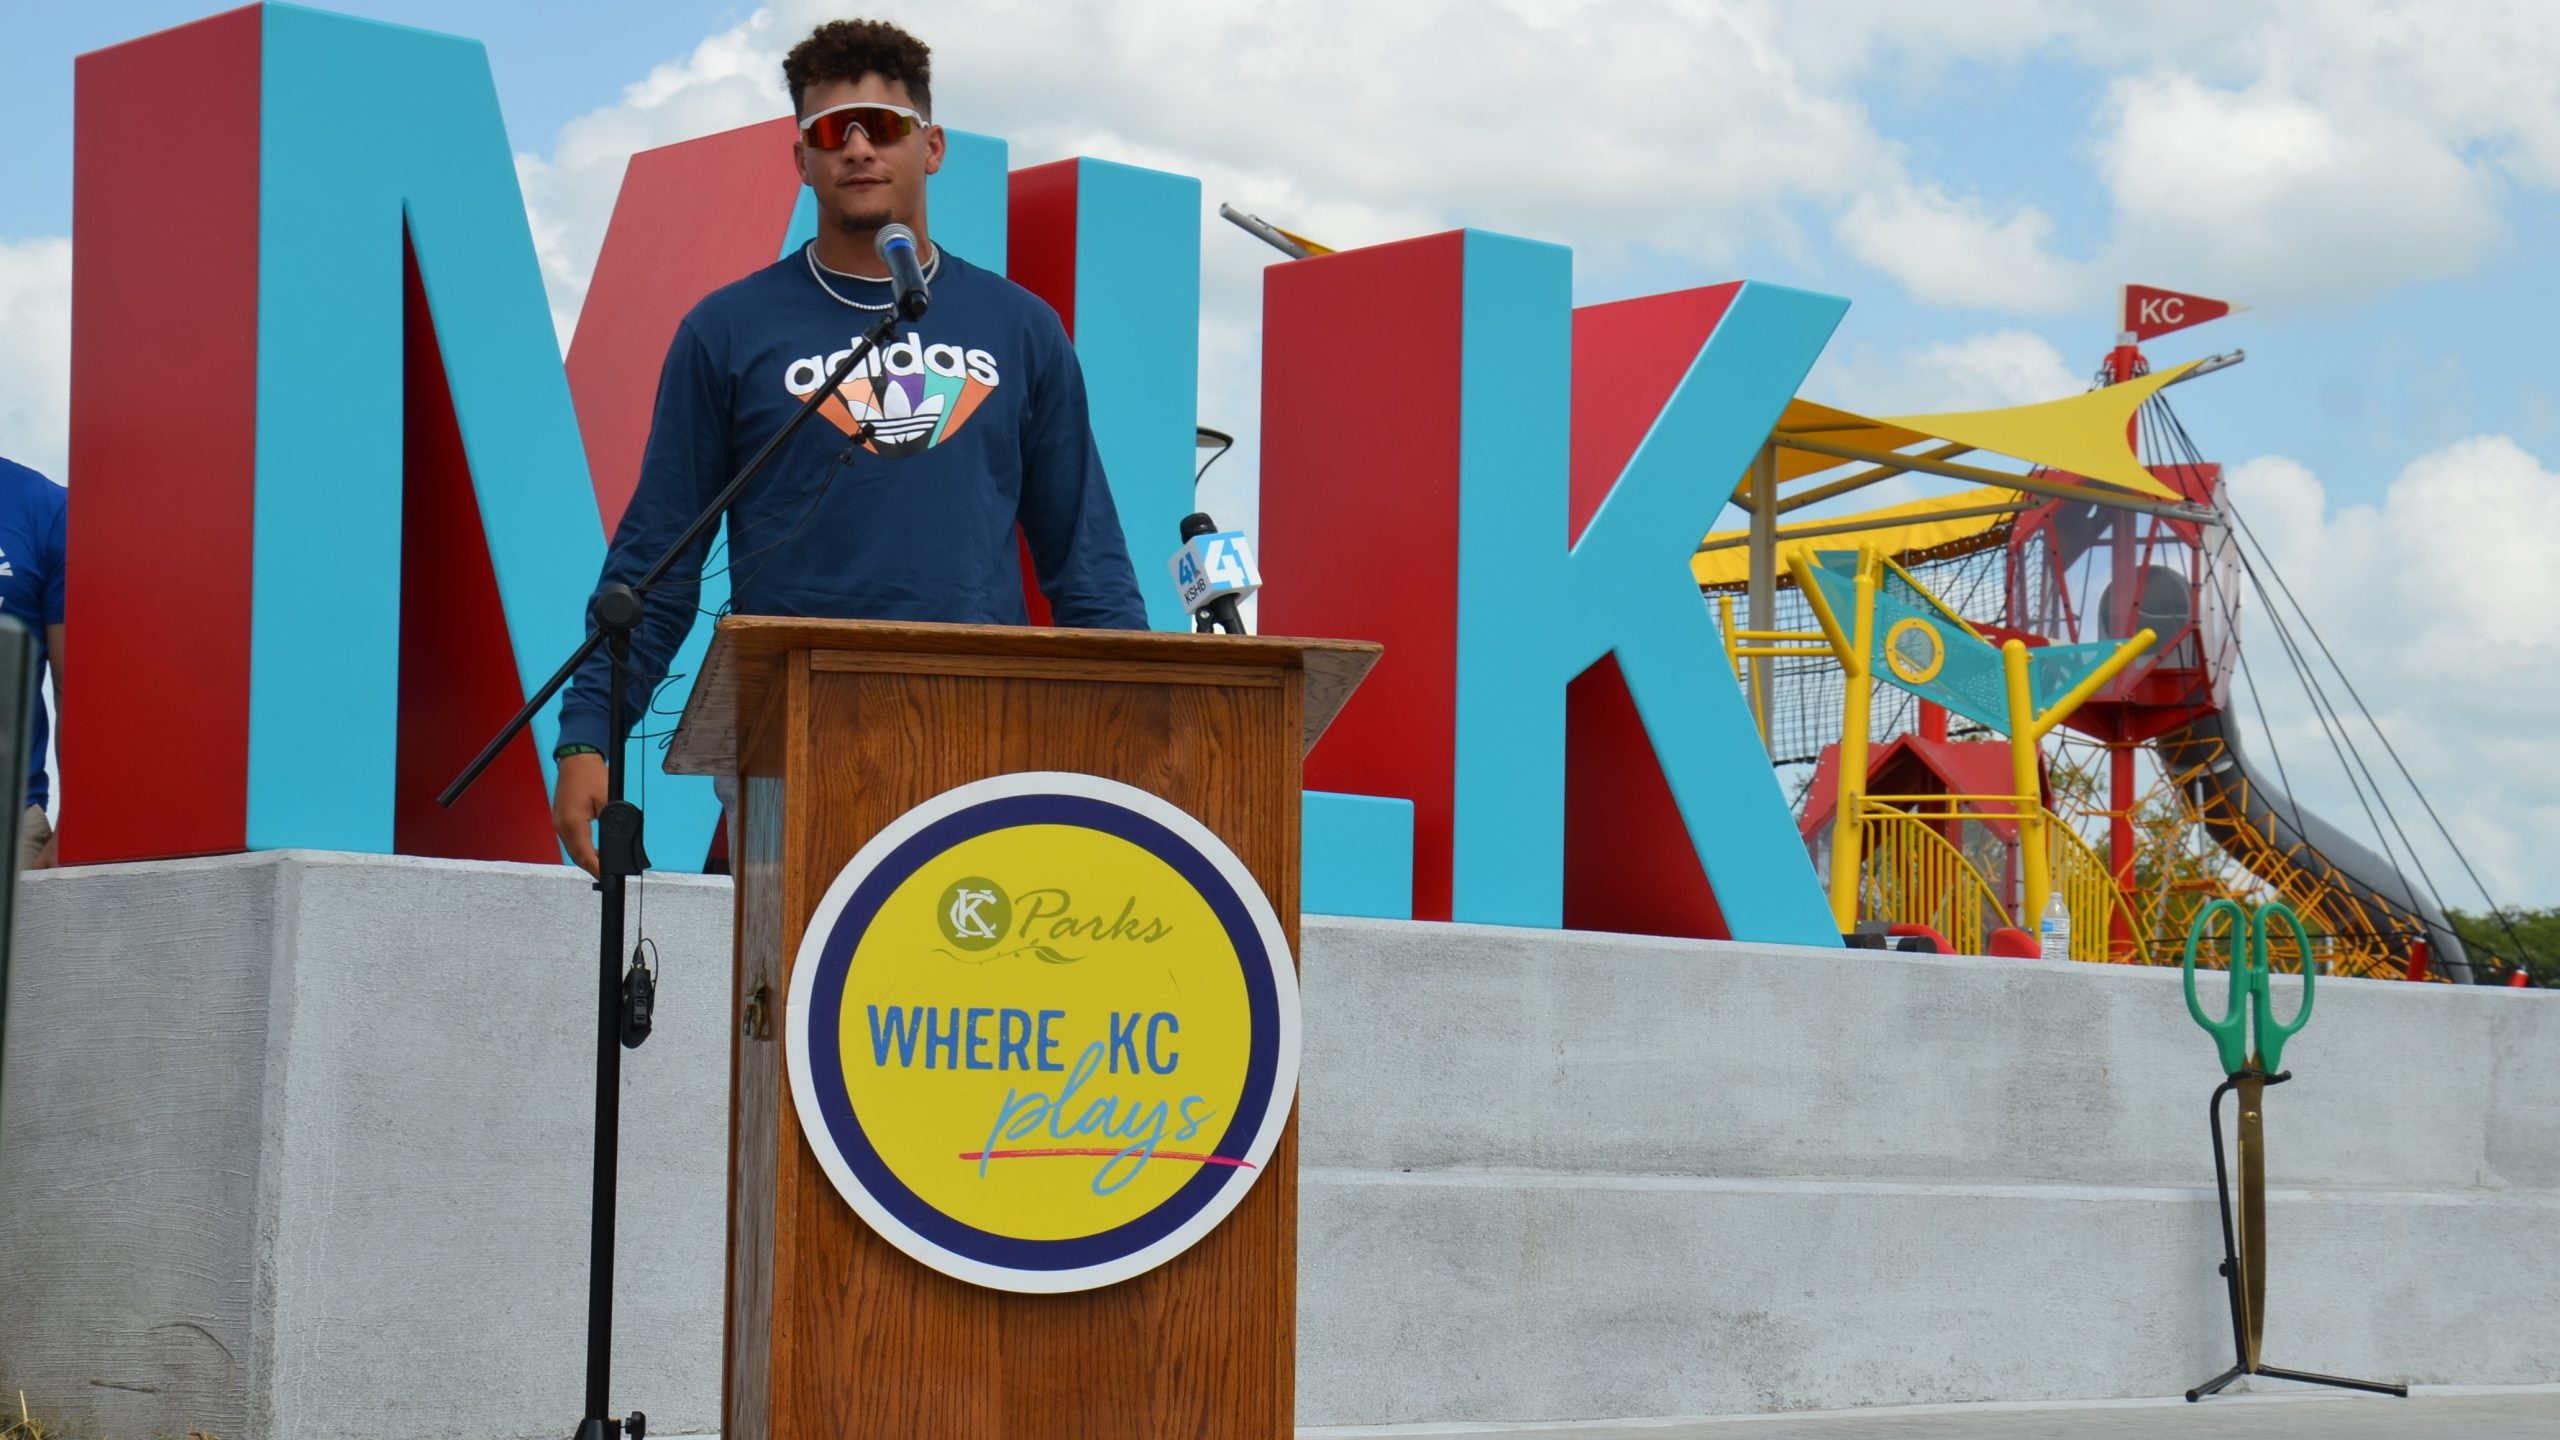 Speech by Patrick Mahomes at Martin Luther King, Jr. Park